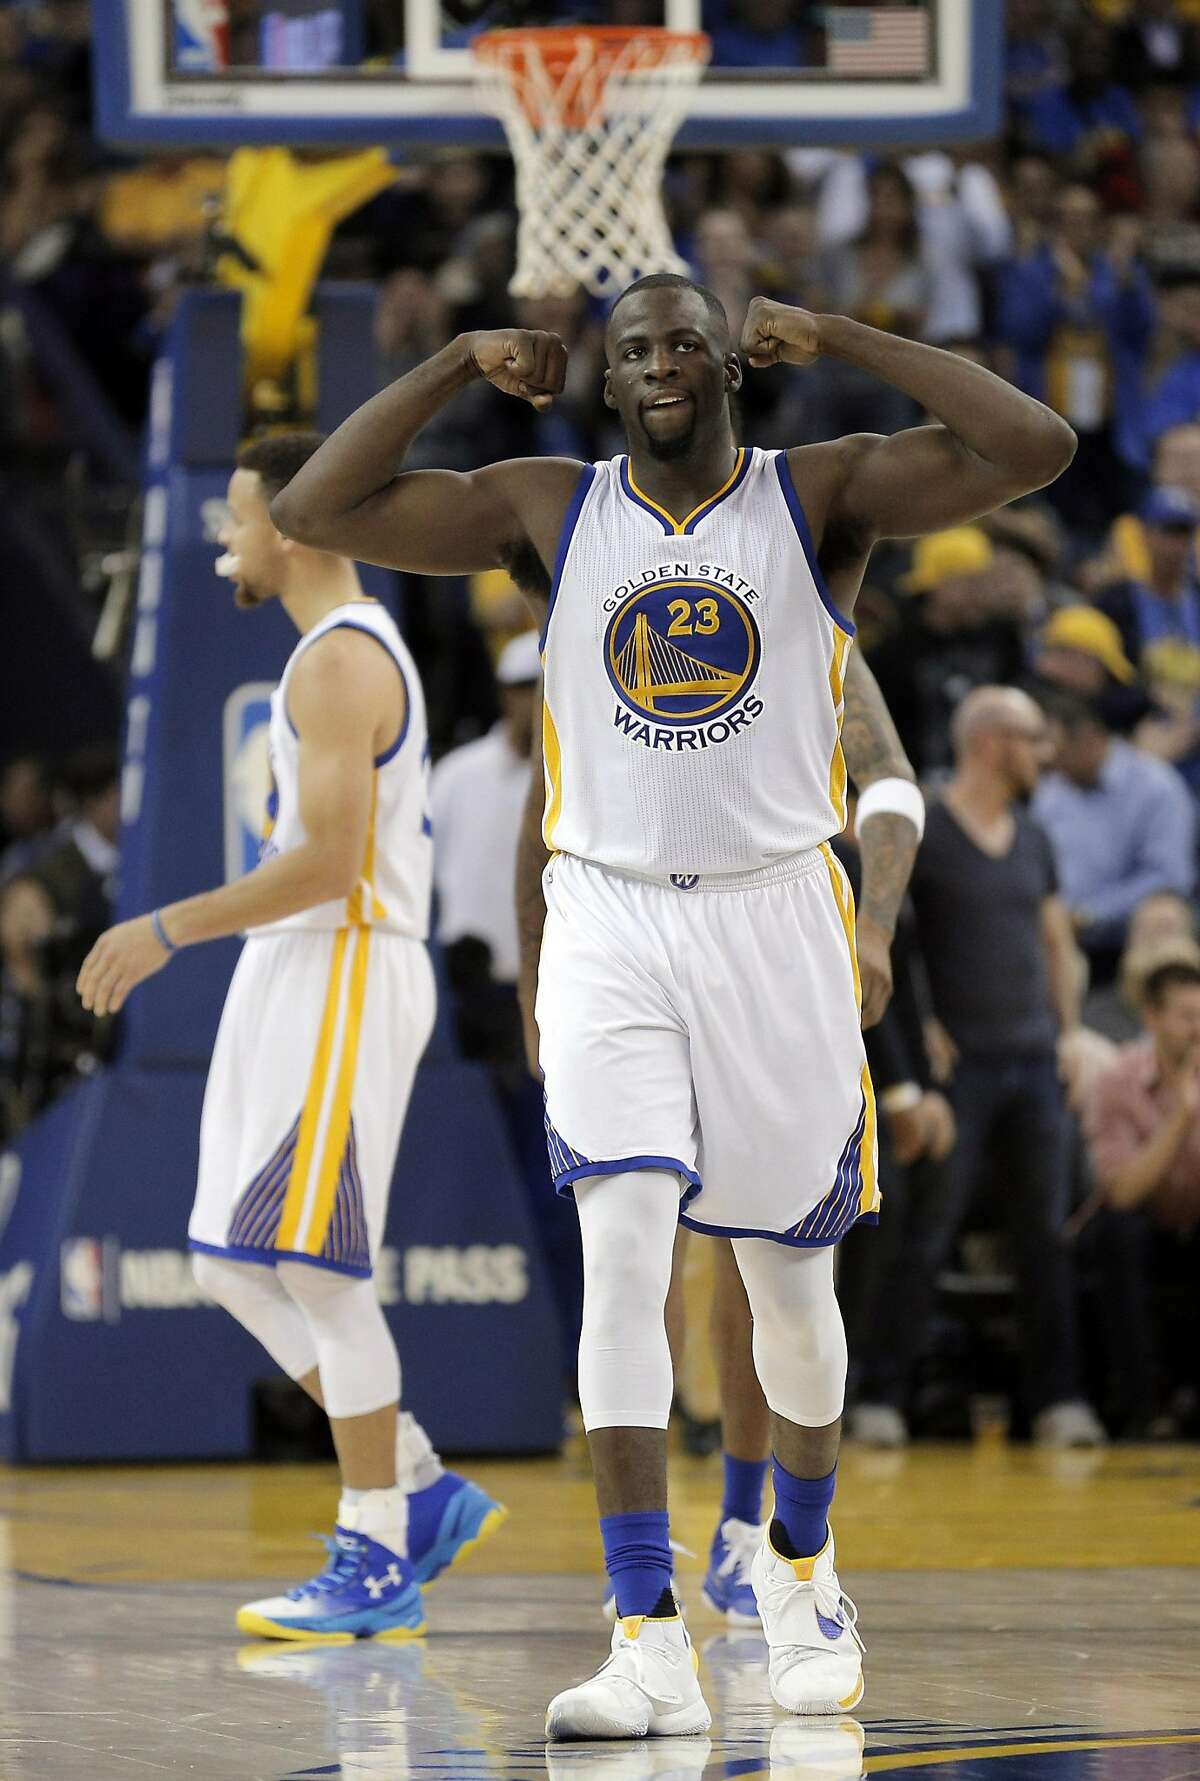 Draymond Green (23) reacts after being fouled on a shot in the second half as the Golden State Warriors played the Los Angeles Clippers at Oracle Arena in Oakland, Calif., on Wednesday, March 23, 2016.